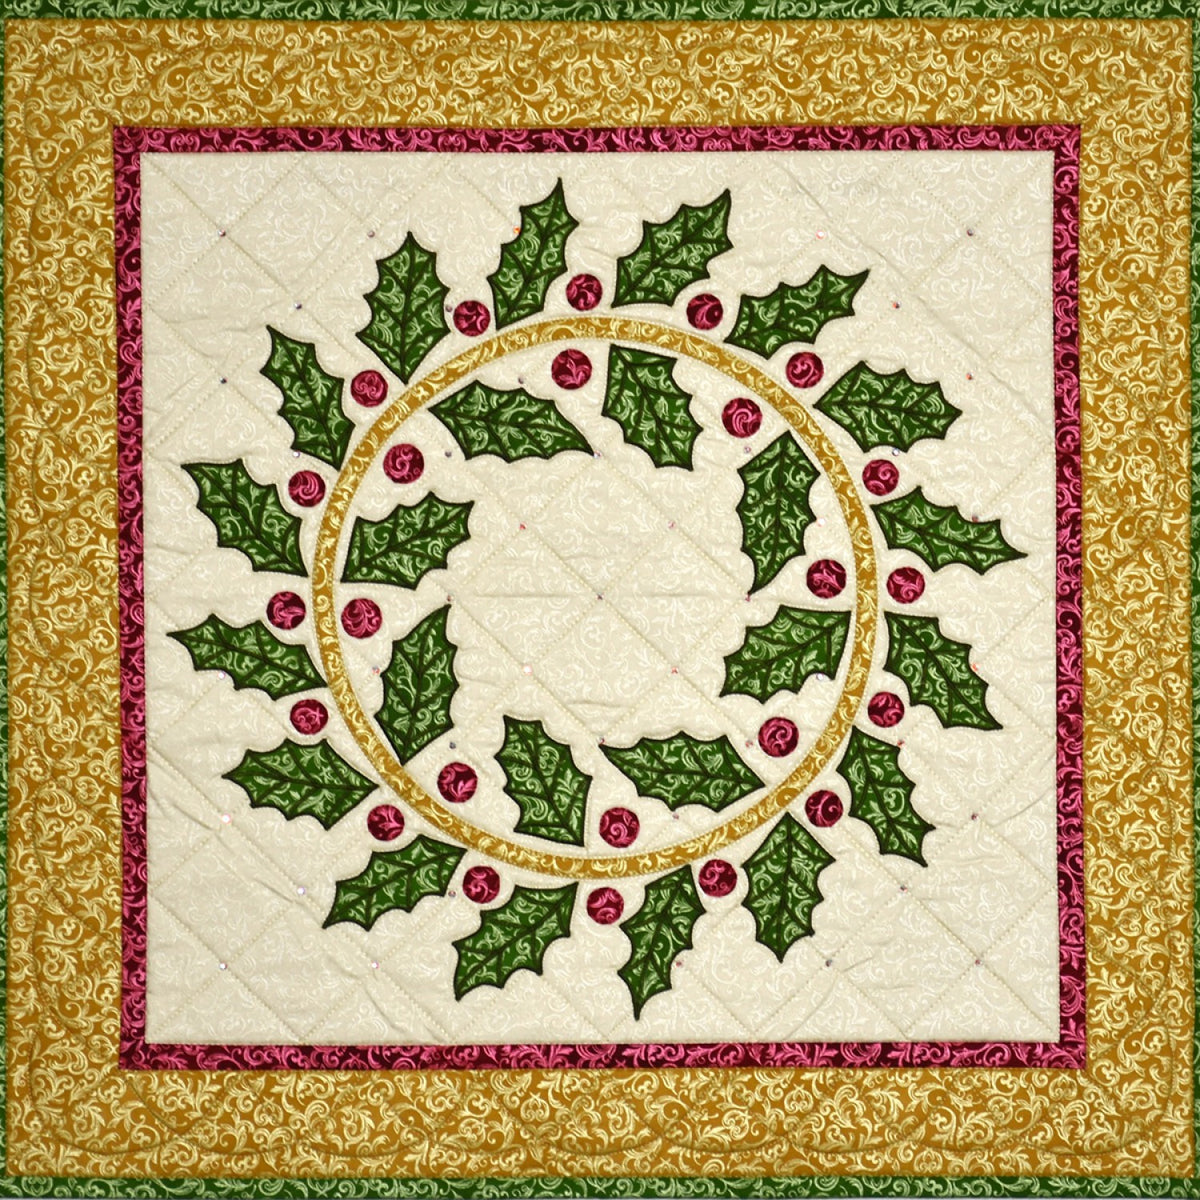 Yuletide Essence Quilt Kit using Pearl Essence Scroll by Maywood Studios